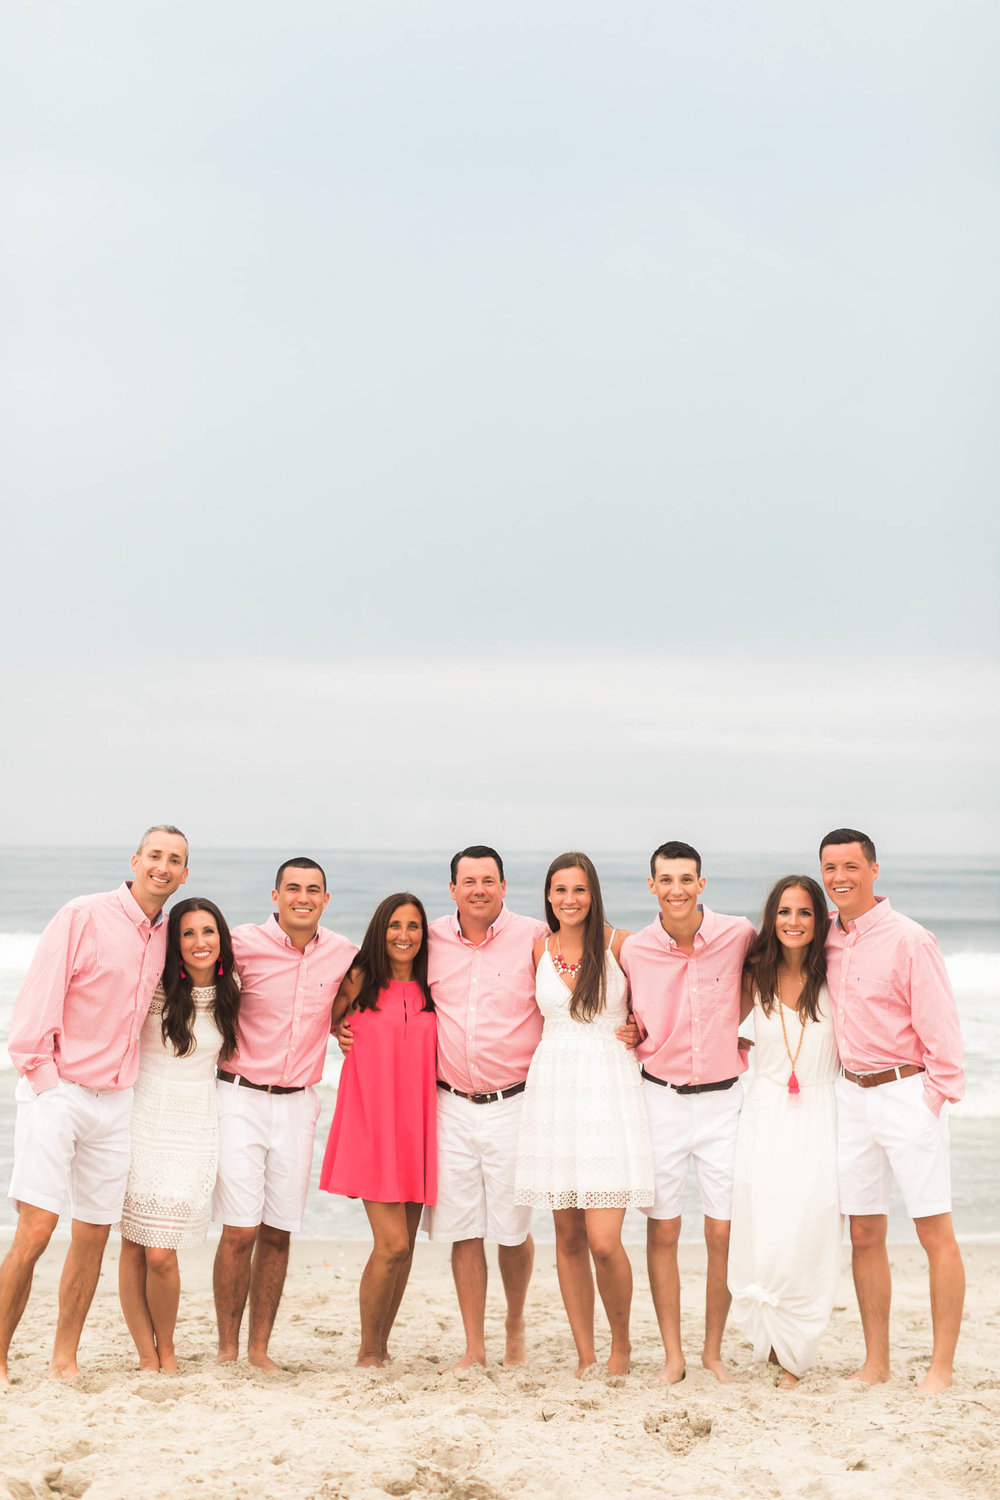 Magdalena Studios - Beach Family Photographer in Ocean City New Jersey NJ31.jpg